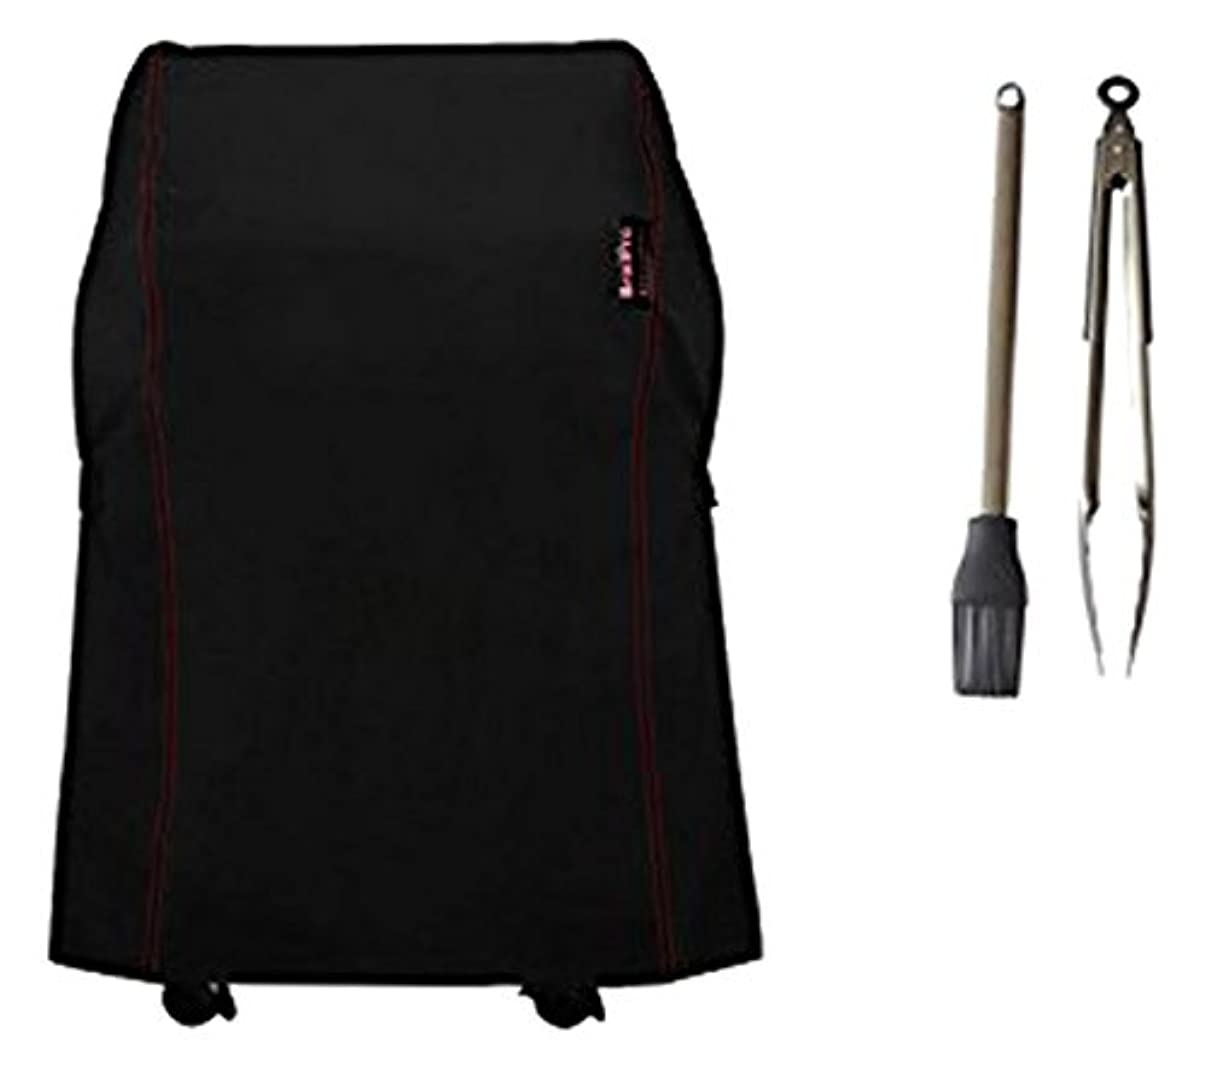 BroilPro Accessories BPA3 Heavy Duty Grill Cover for Weber Spirit 210 Series Gas Grills (Compared To Weber 7105) Including Basting Brush and Tongs